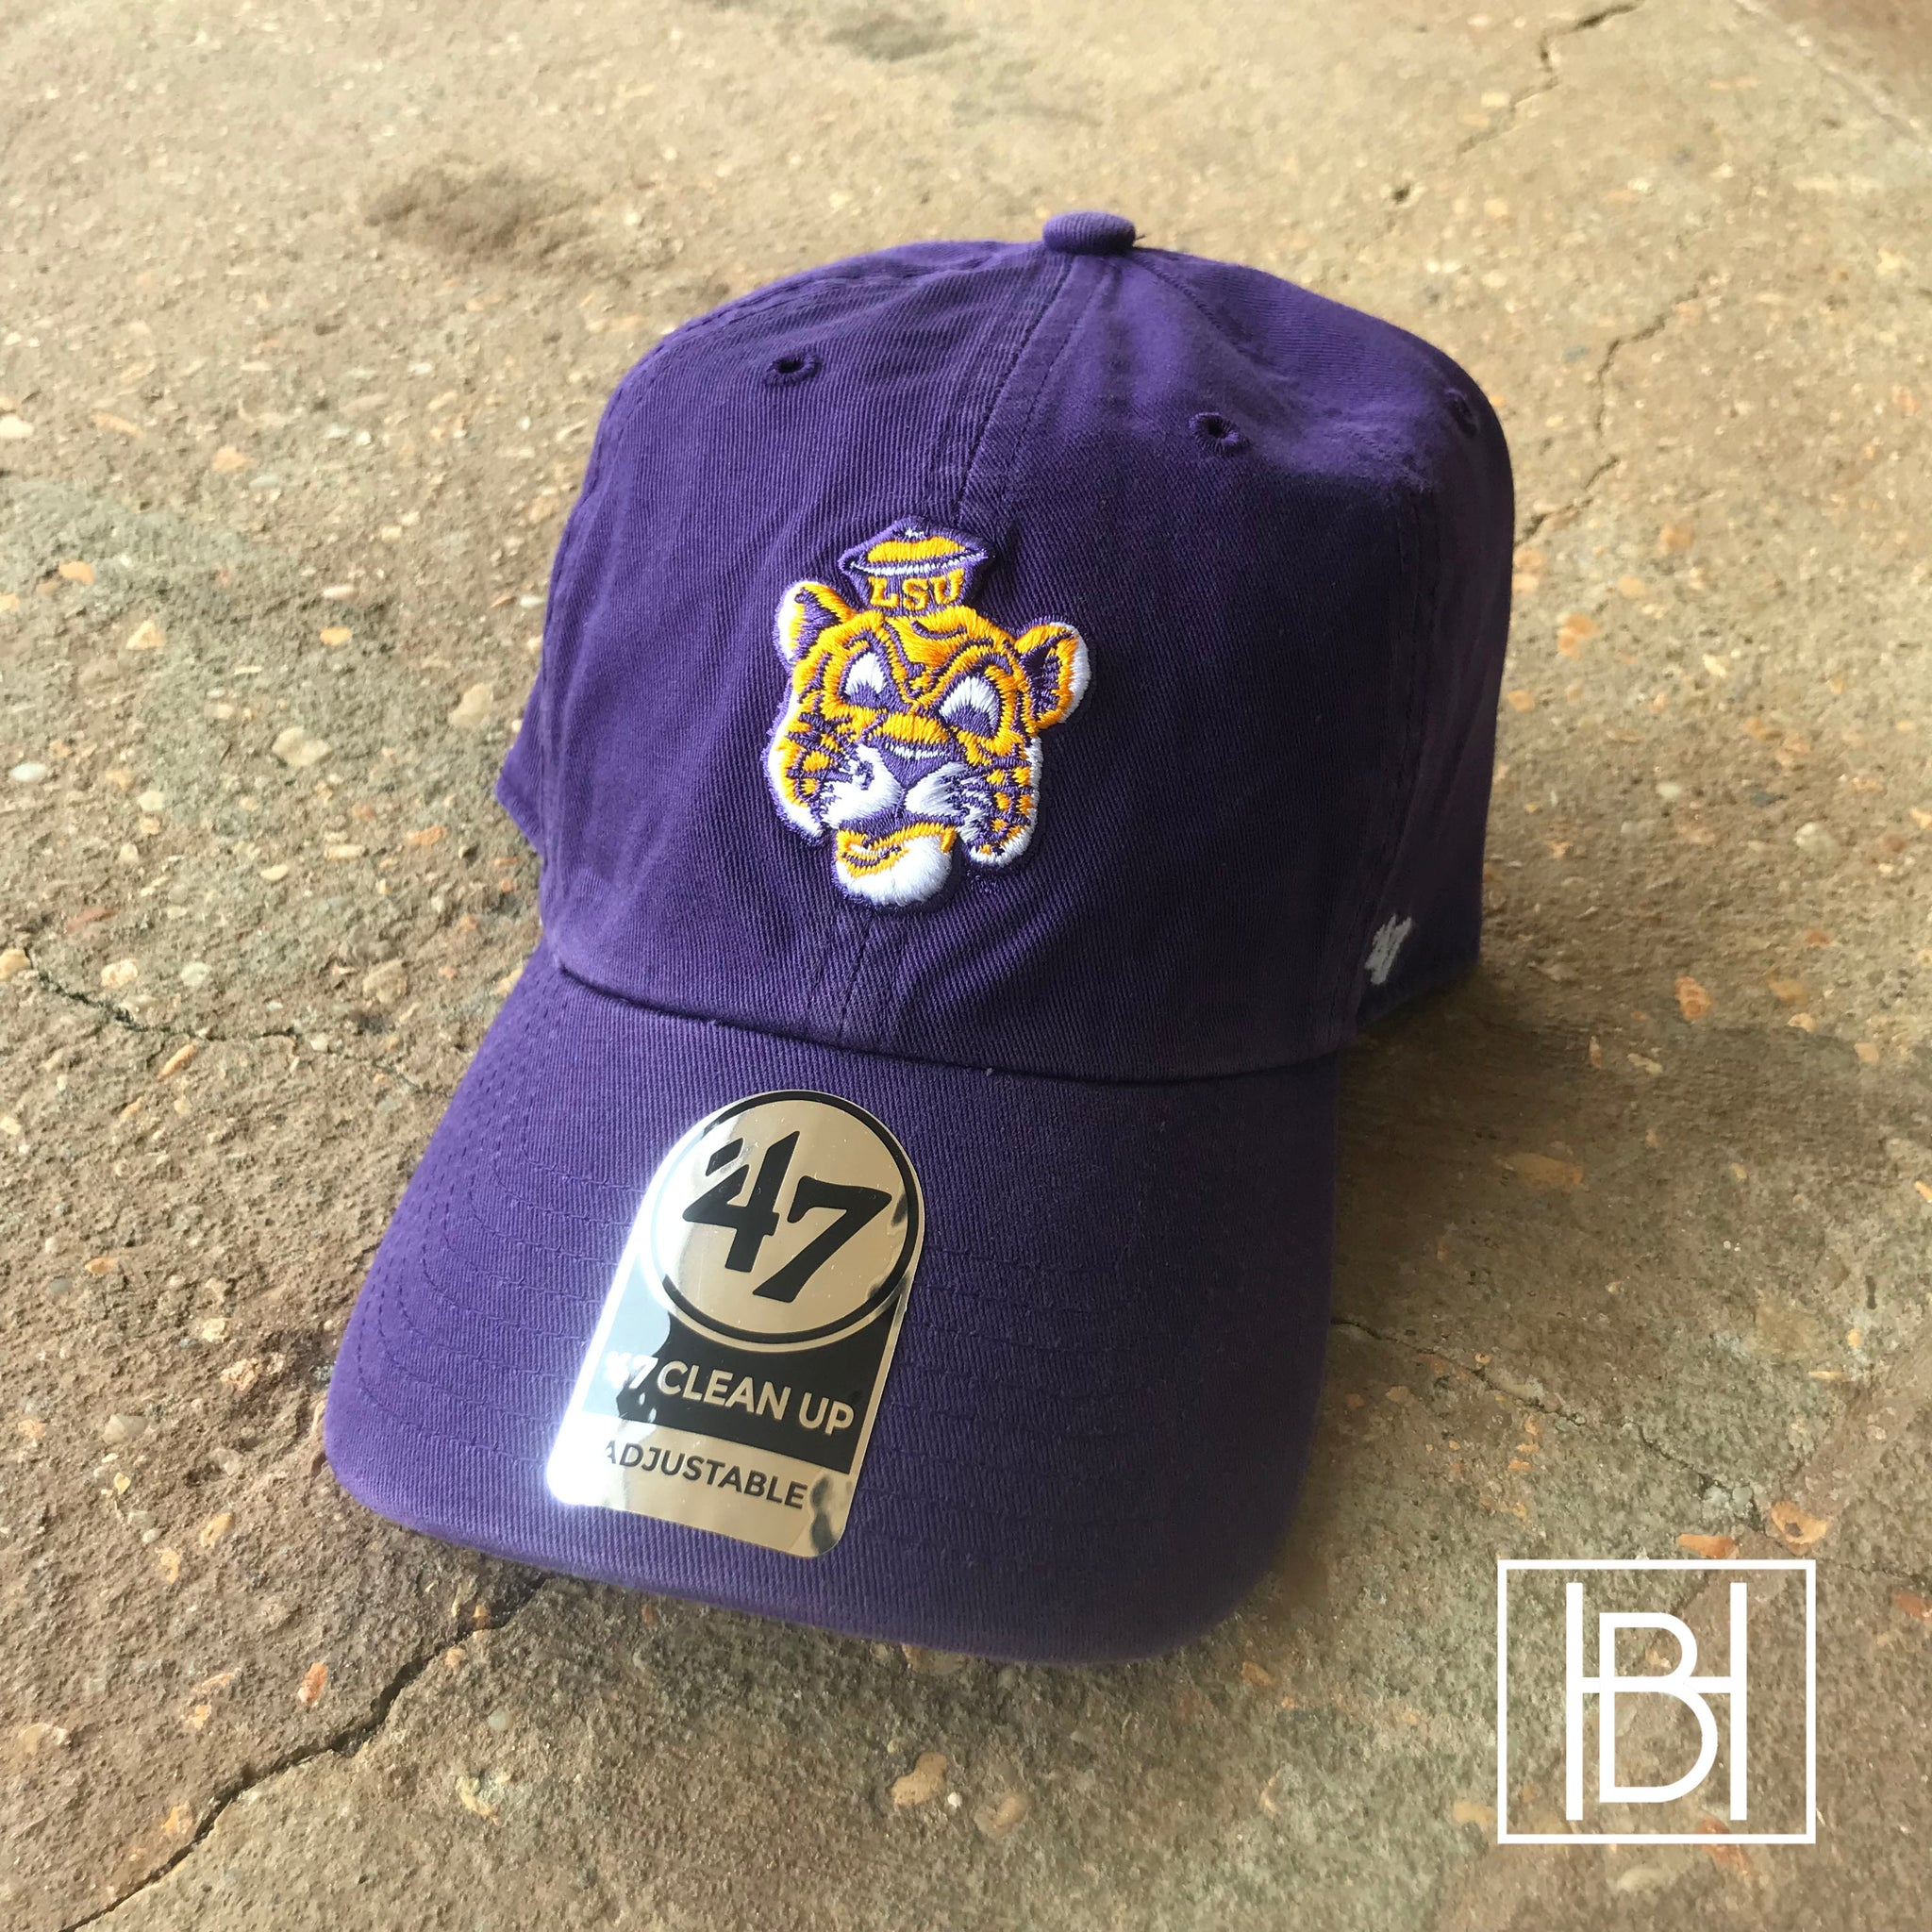 Beanie Mike LSU Hat - Purple